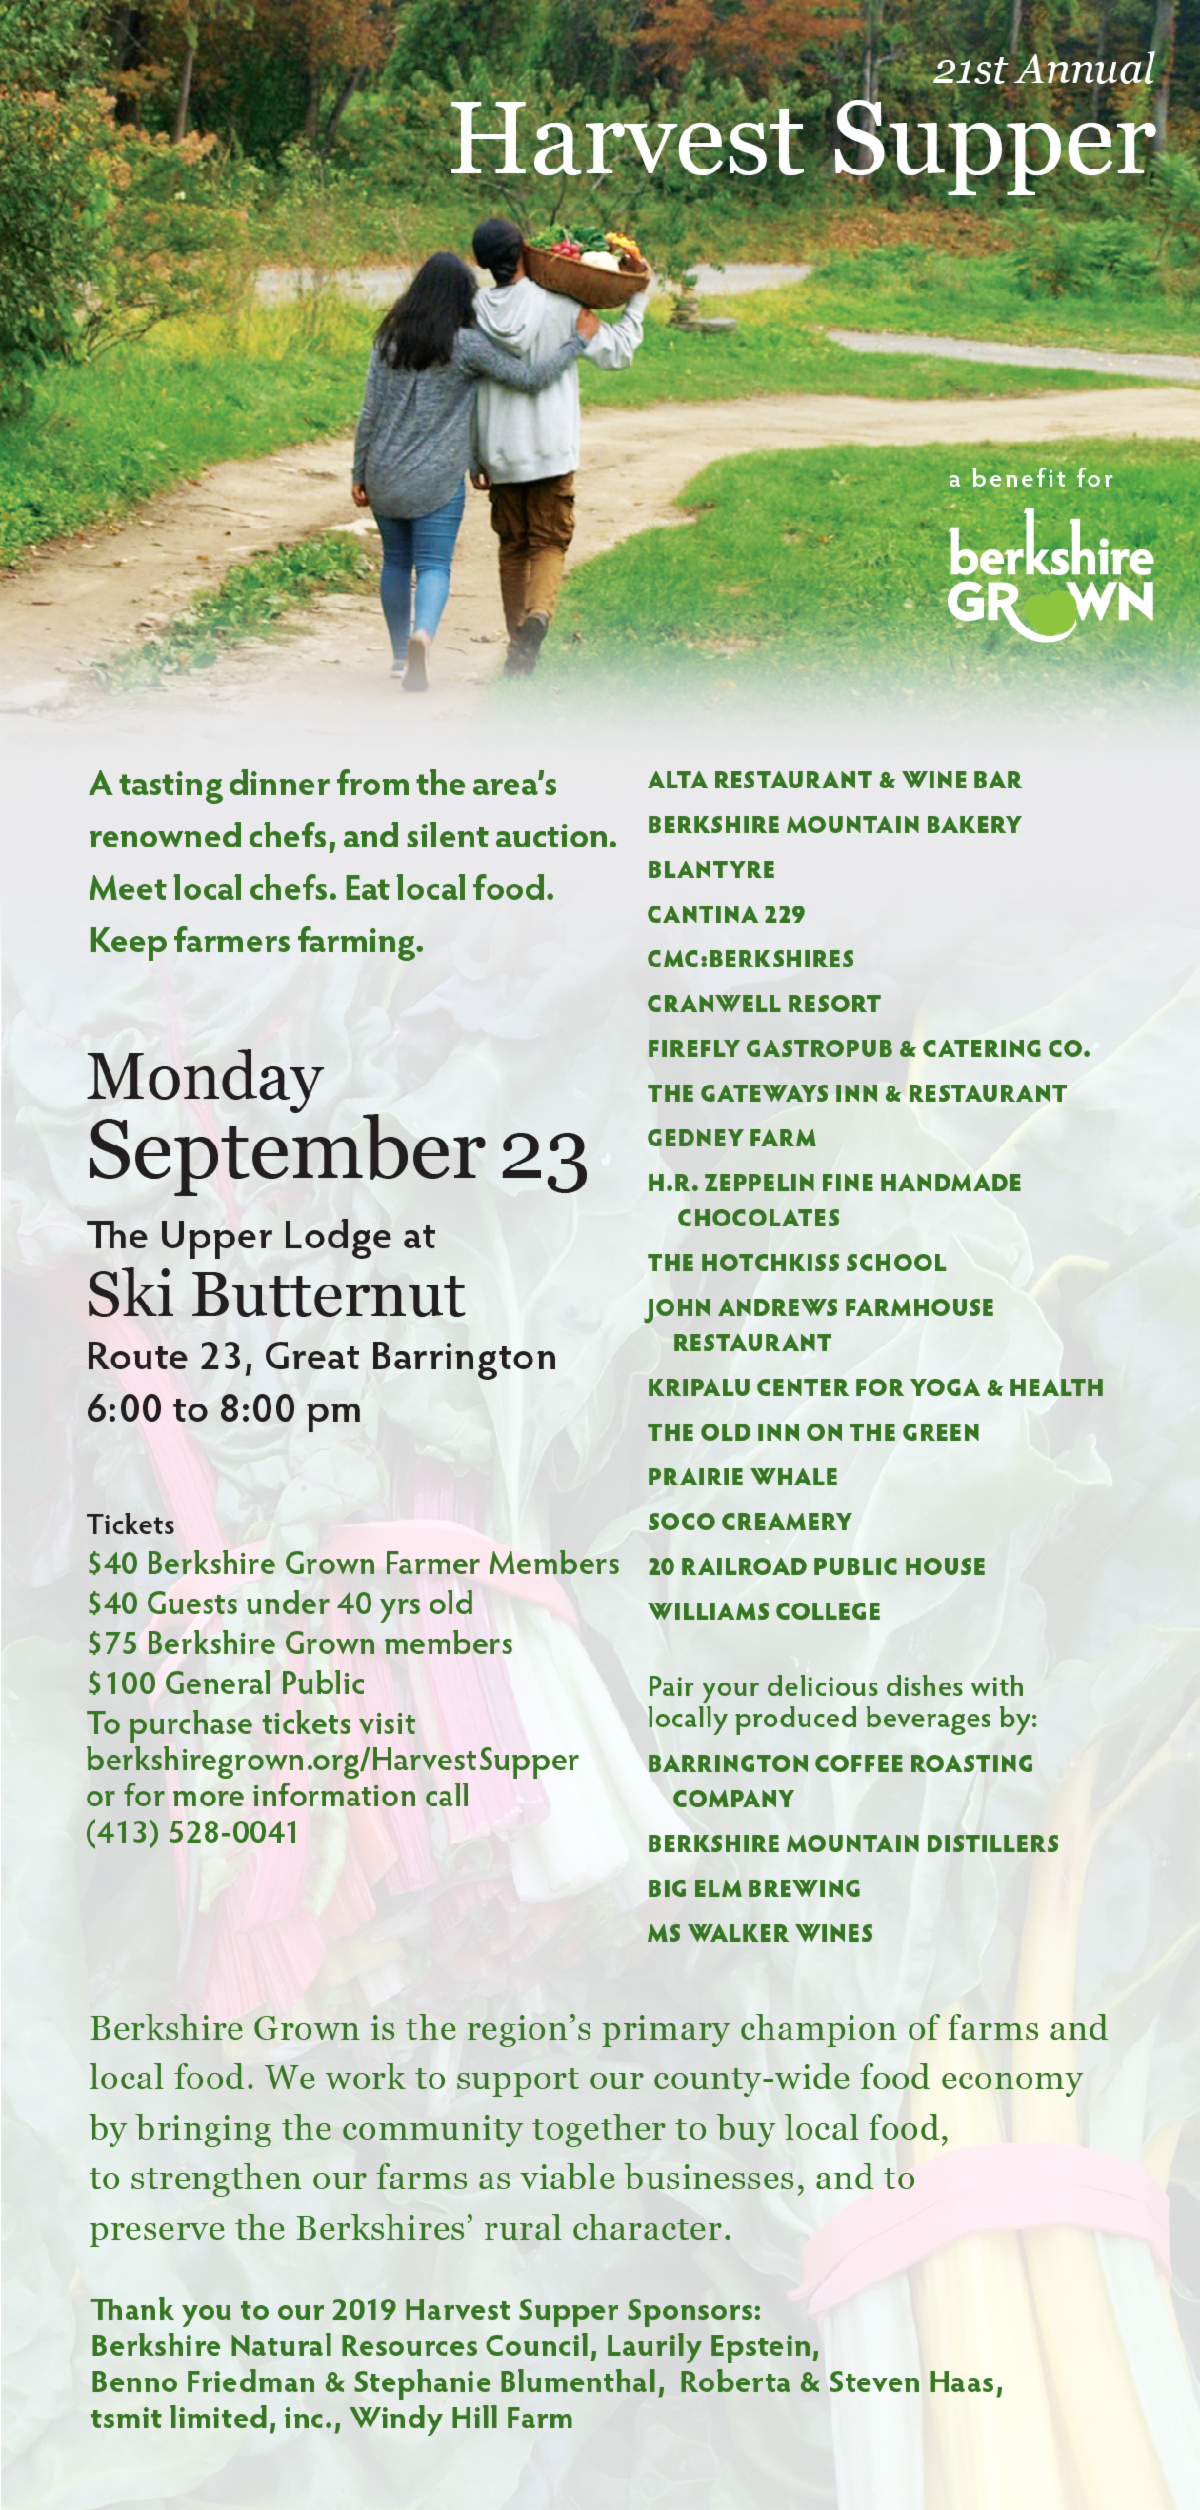 Berkshire Grown's 21st Annual Harvest Supper  at Ski Butternut Monday, September 23, 6-8pm A tasting dinner from the area's renowned chefs and silent auction to benefit Berkshire Grown. Meet local chefs. Eat local food. Keep farmers farming.